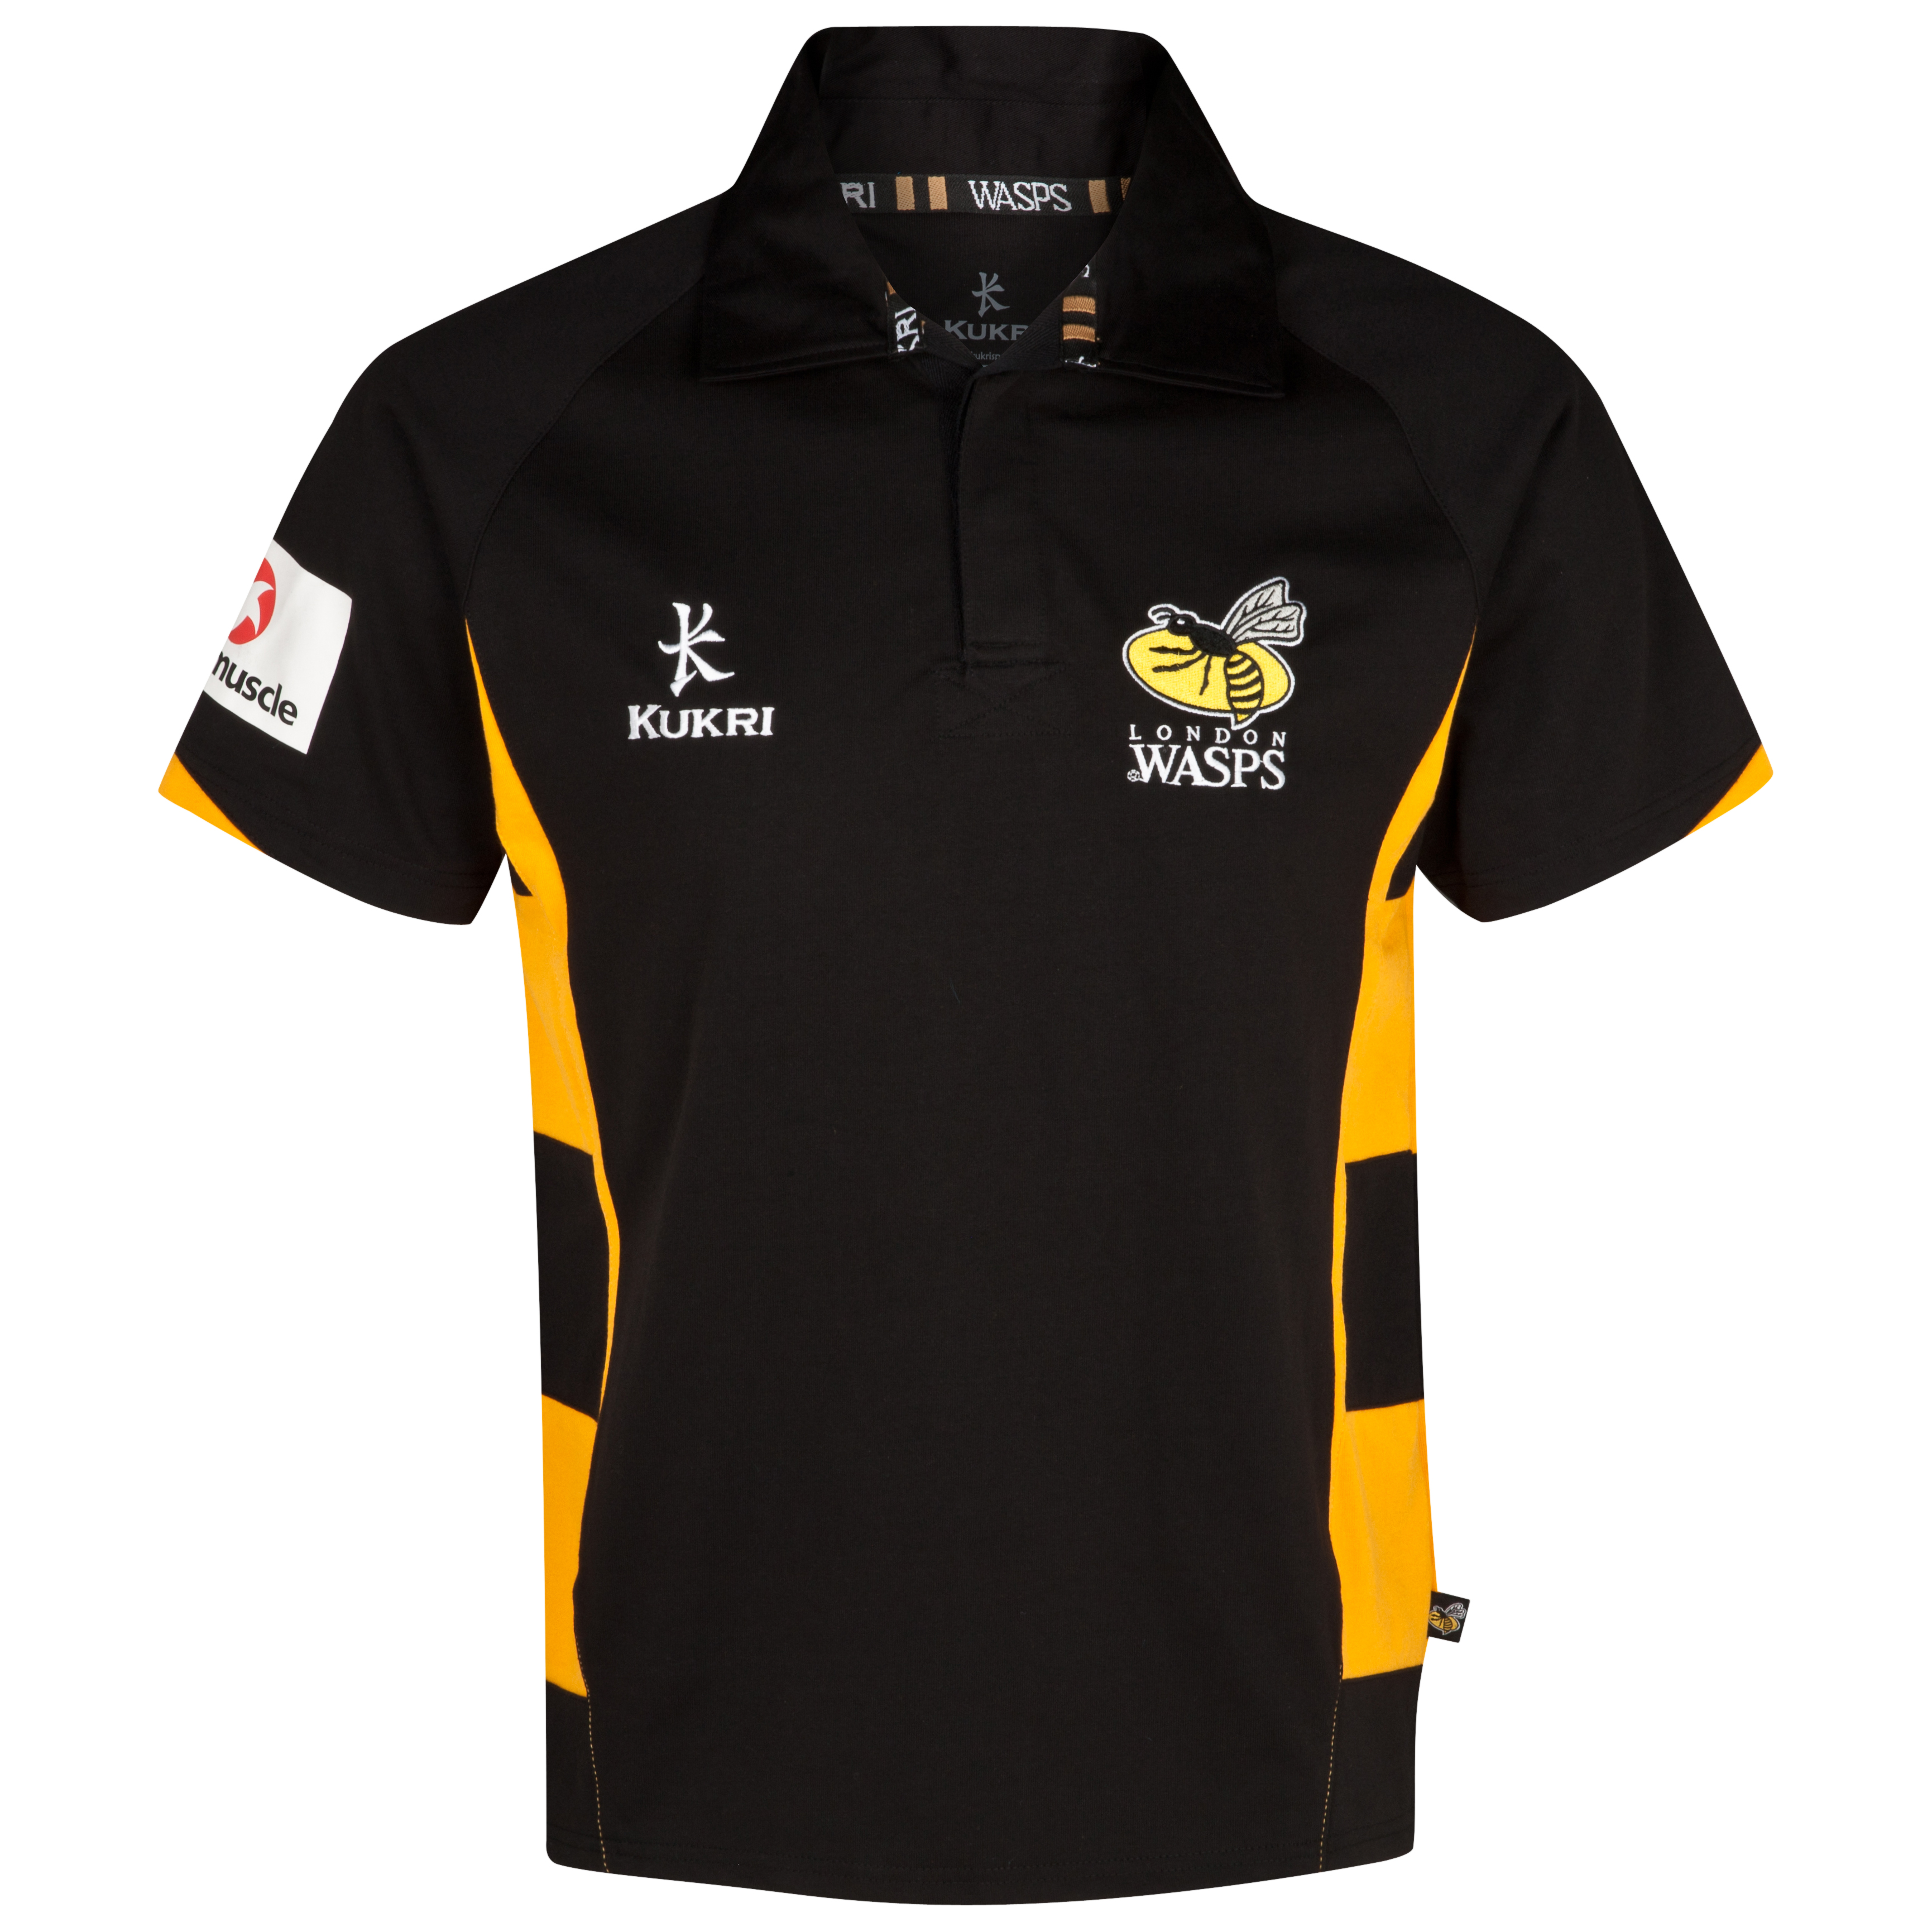 Wasps Home Supporters Shirt 2012/13